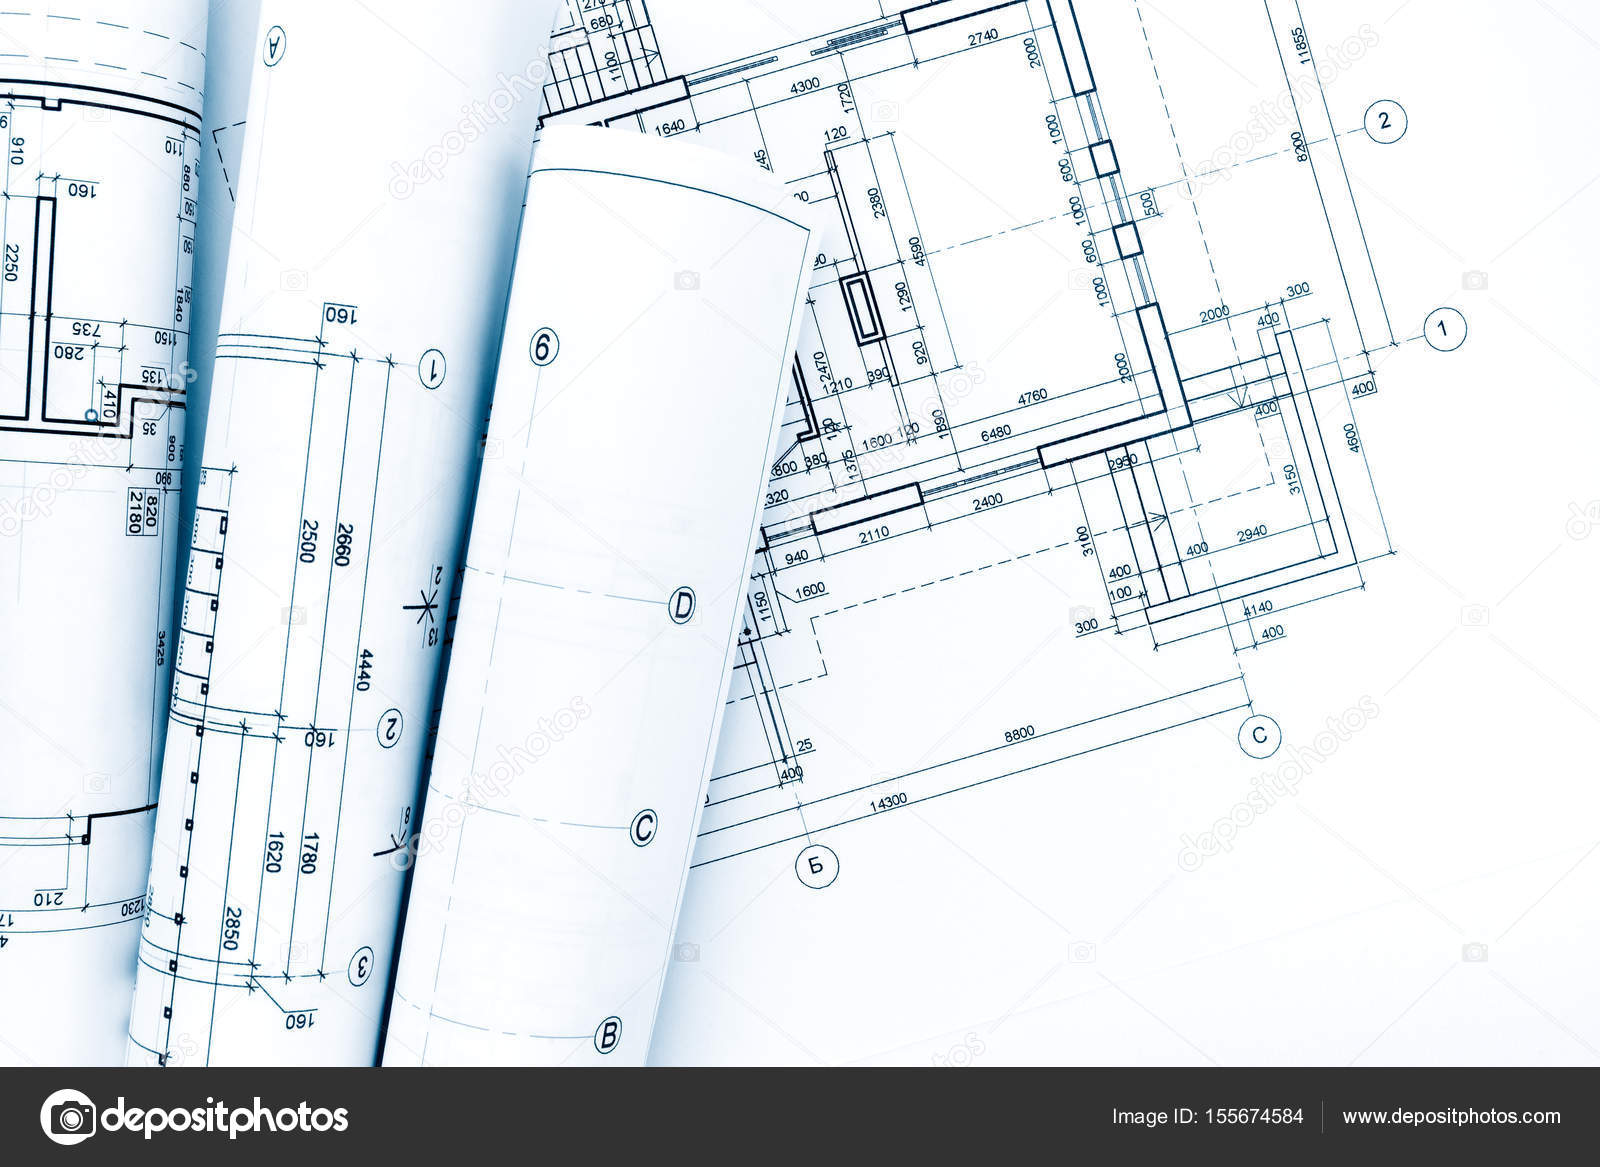 Architectural project drawings blueprint rolls on house plan architectural project drawings blueprint rolls on house plan photo by mrtwister malvernweather Images